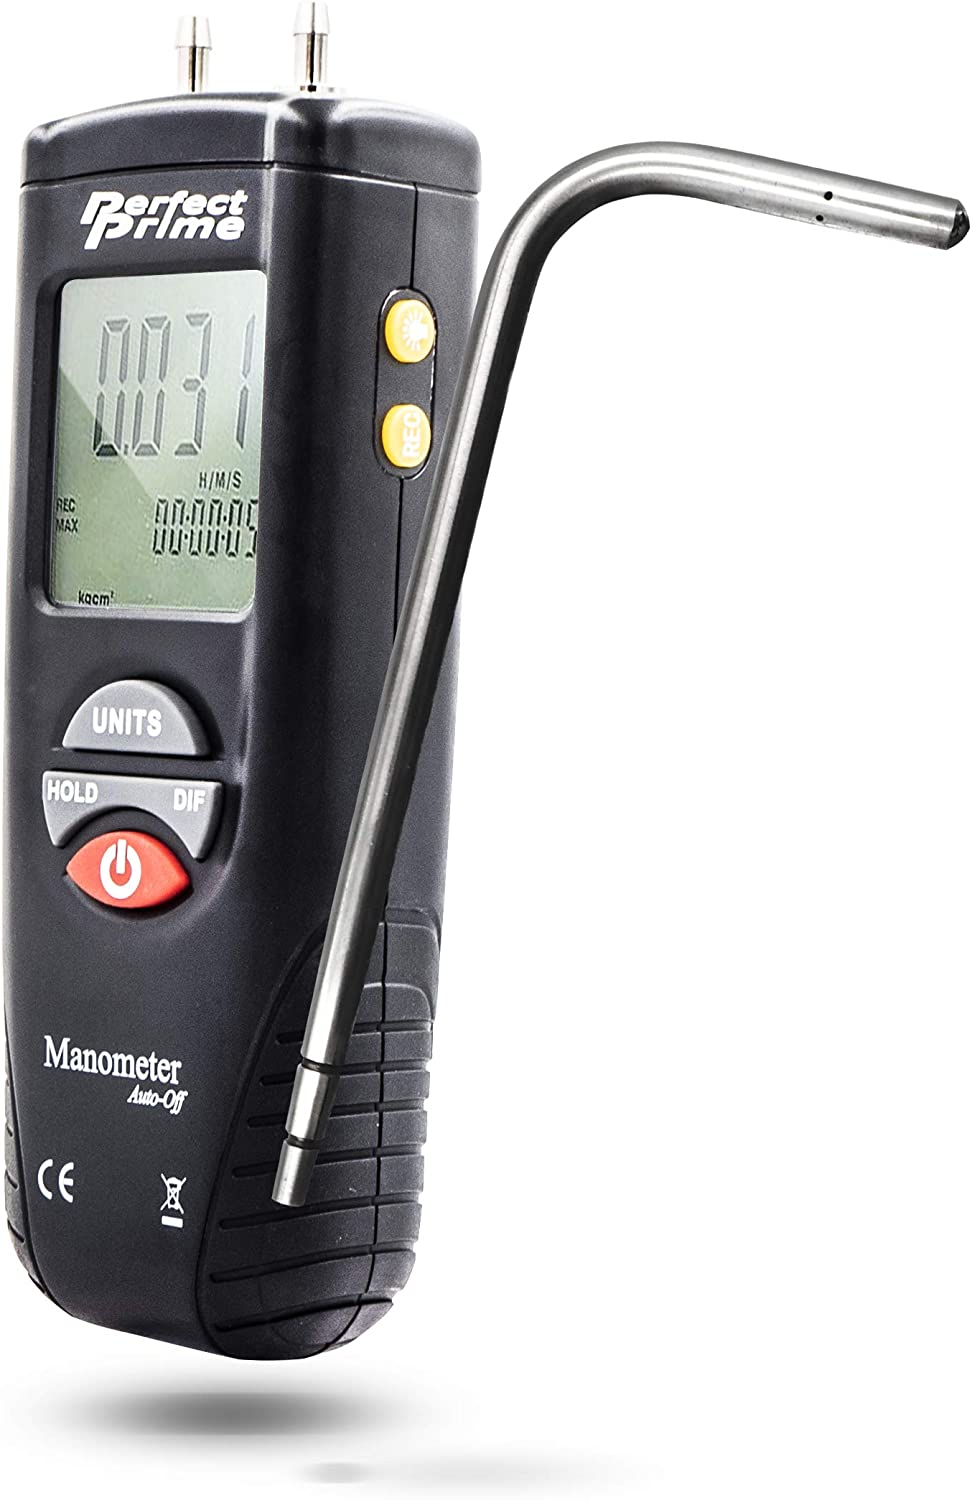 """PerfectPrime AR1890P1, Digital Air Pressure Manometer to Measure Gauge & Differential Pressure ±13.79kPa / ±2 psi / ±55.4 H2O with 304 Stainless Steel Static Tube 5.13"""" x 2.34"""" Length"""